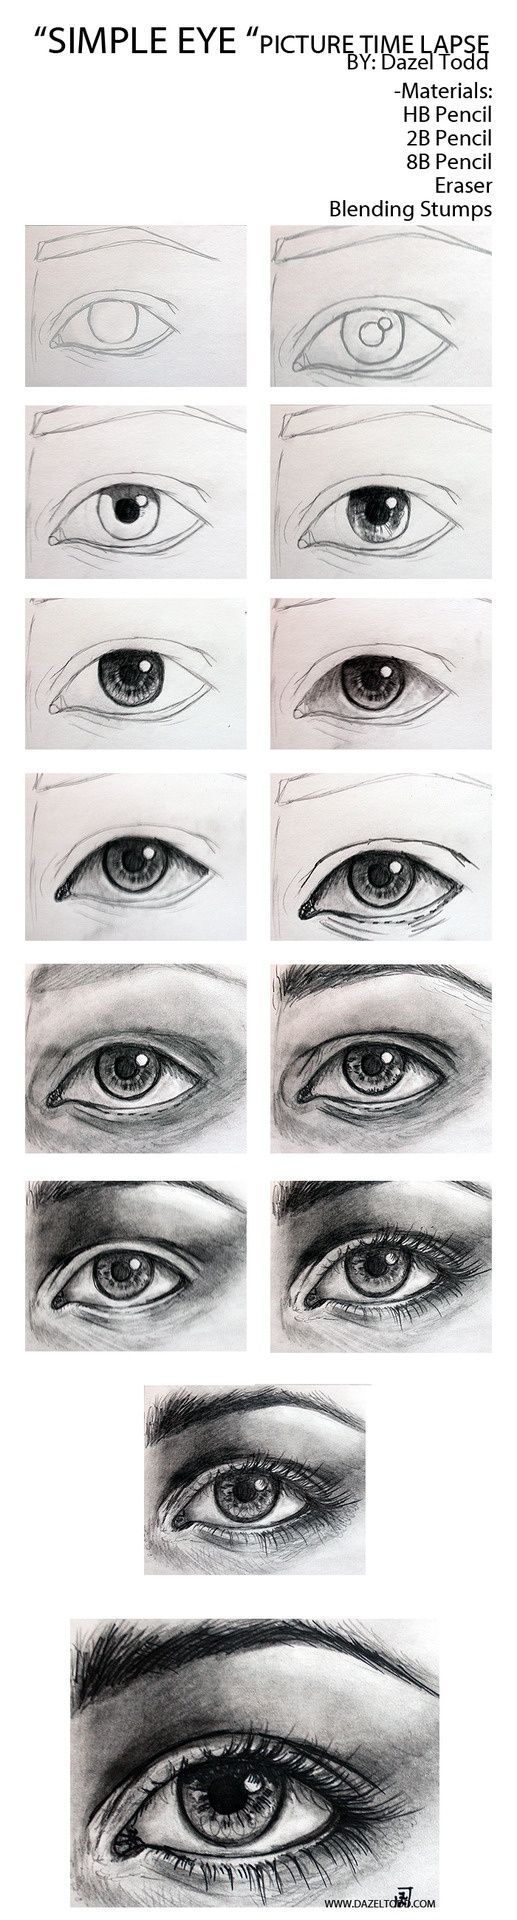 Dazel Todd Sketch of eye tutorial, drawing tips.